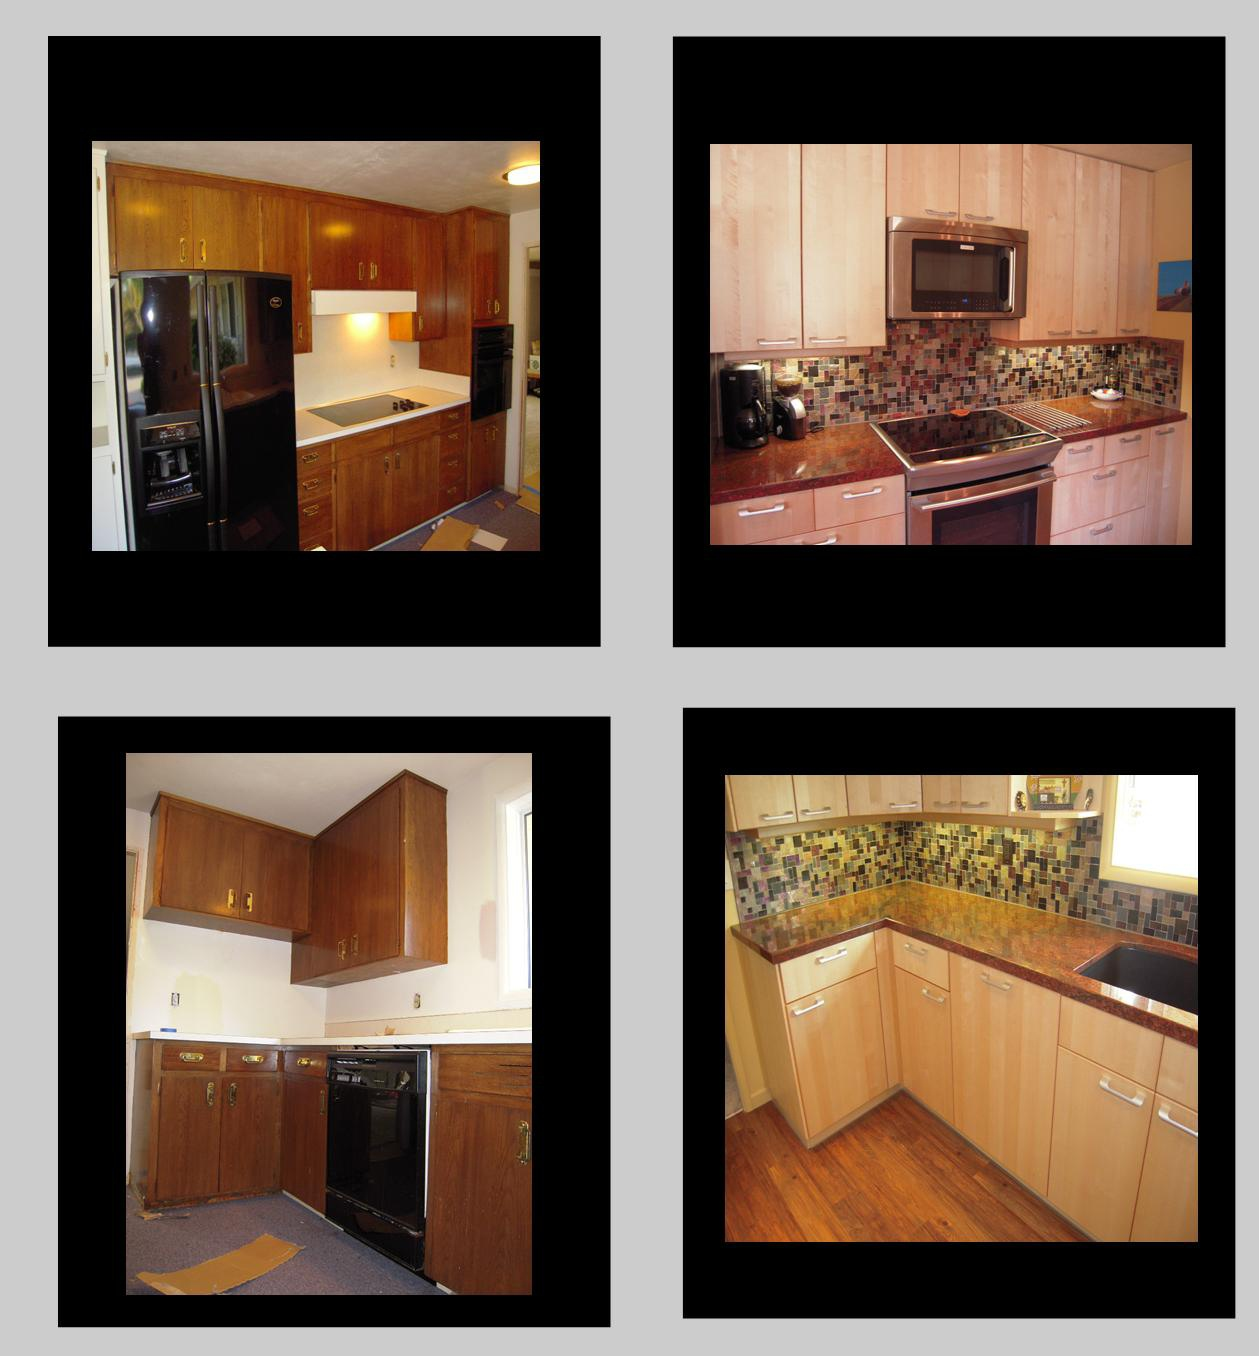 55 ikea kitchen remodel Contact us for an ESTIMATE DESIGN